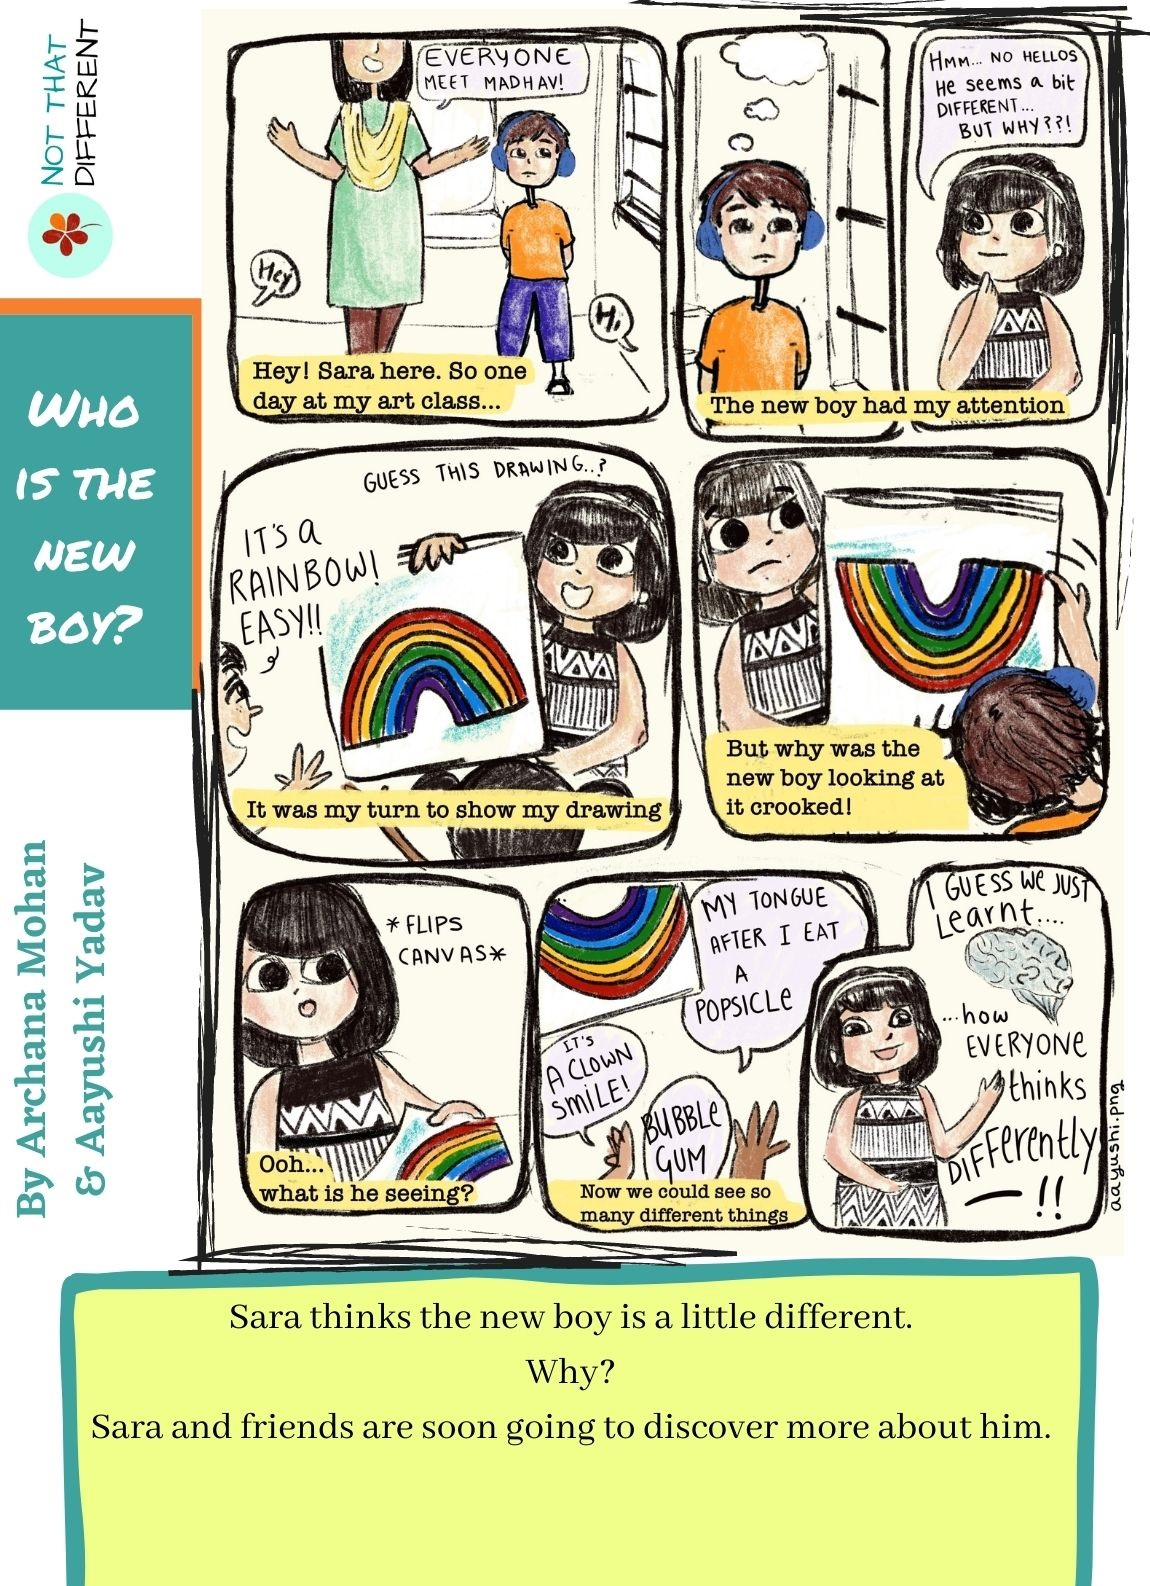 Who is the new boy? | Comic Strip on Autism